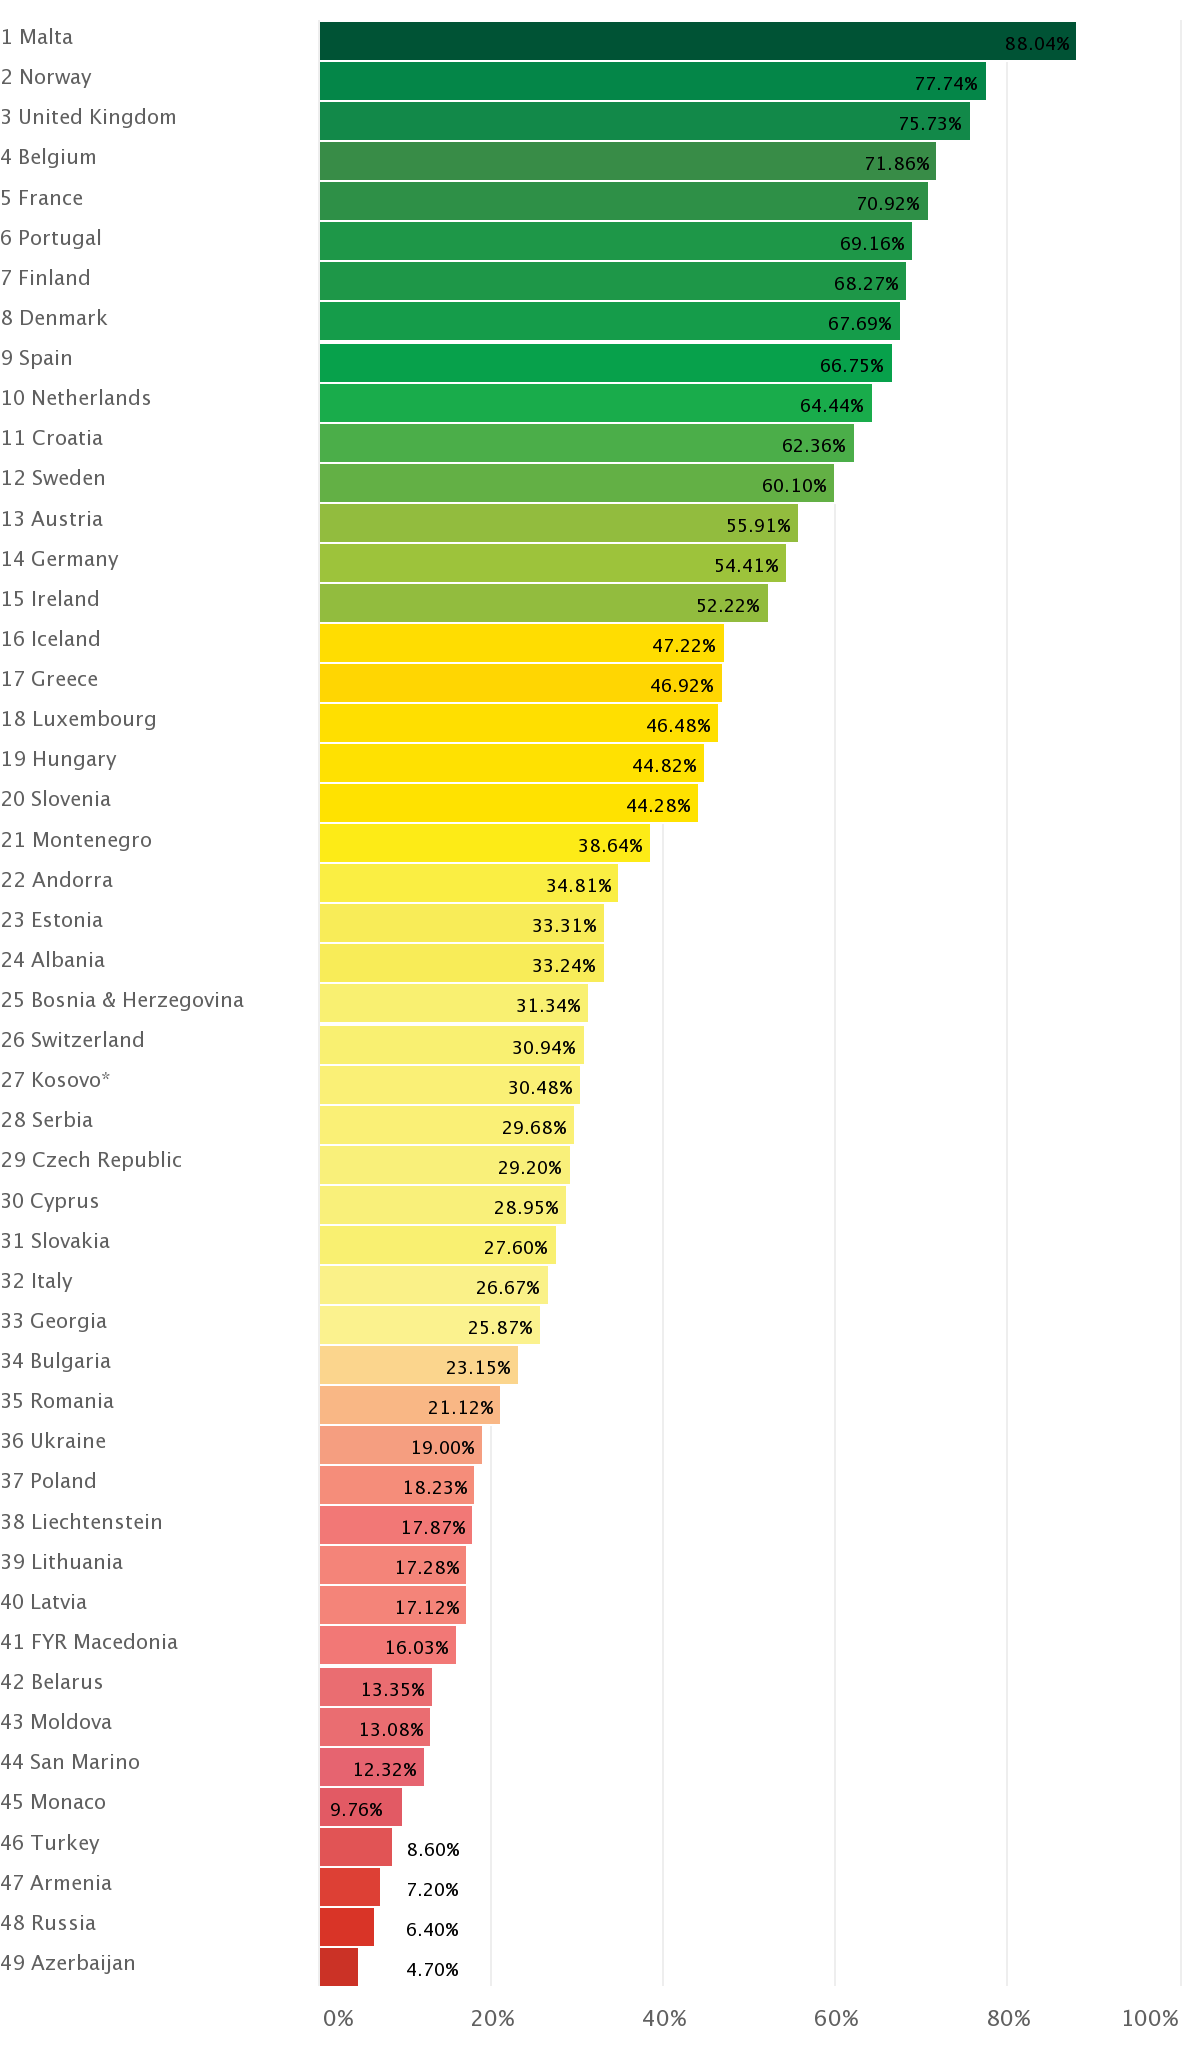 Graph showing the most gayest eurpean countries per capita